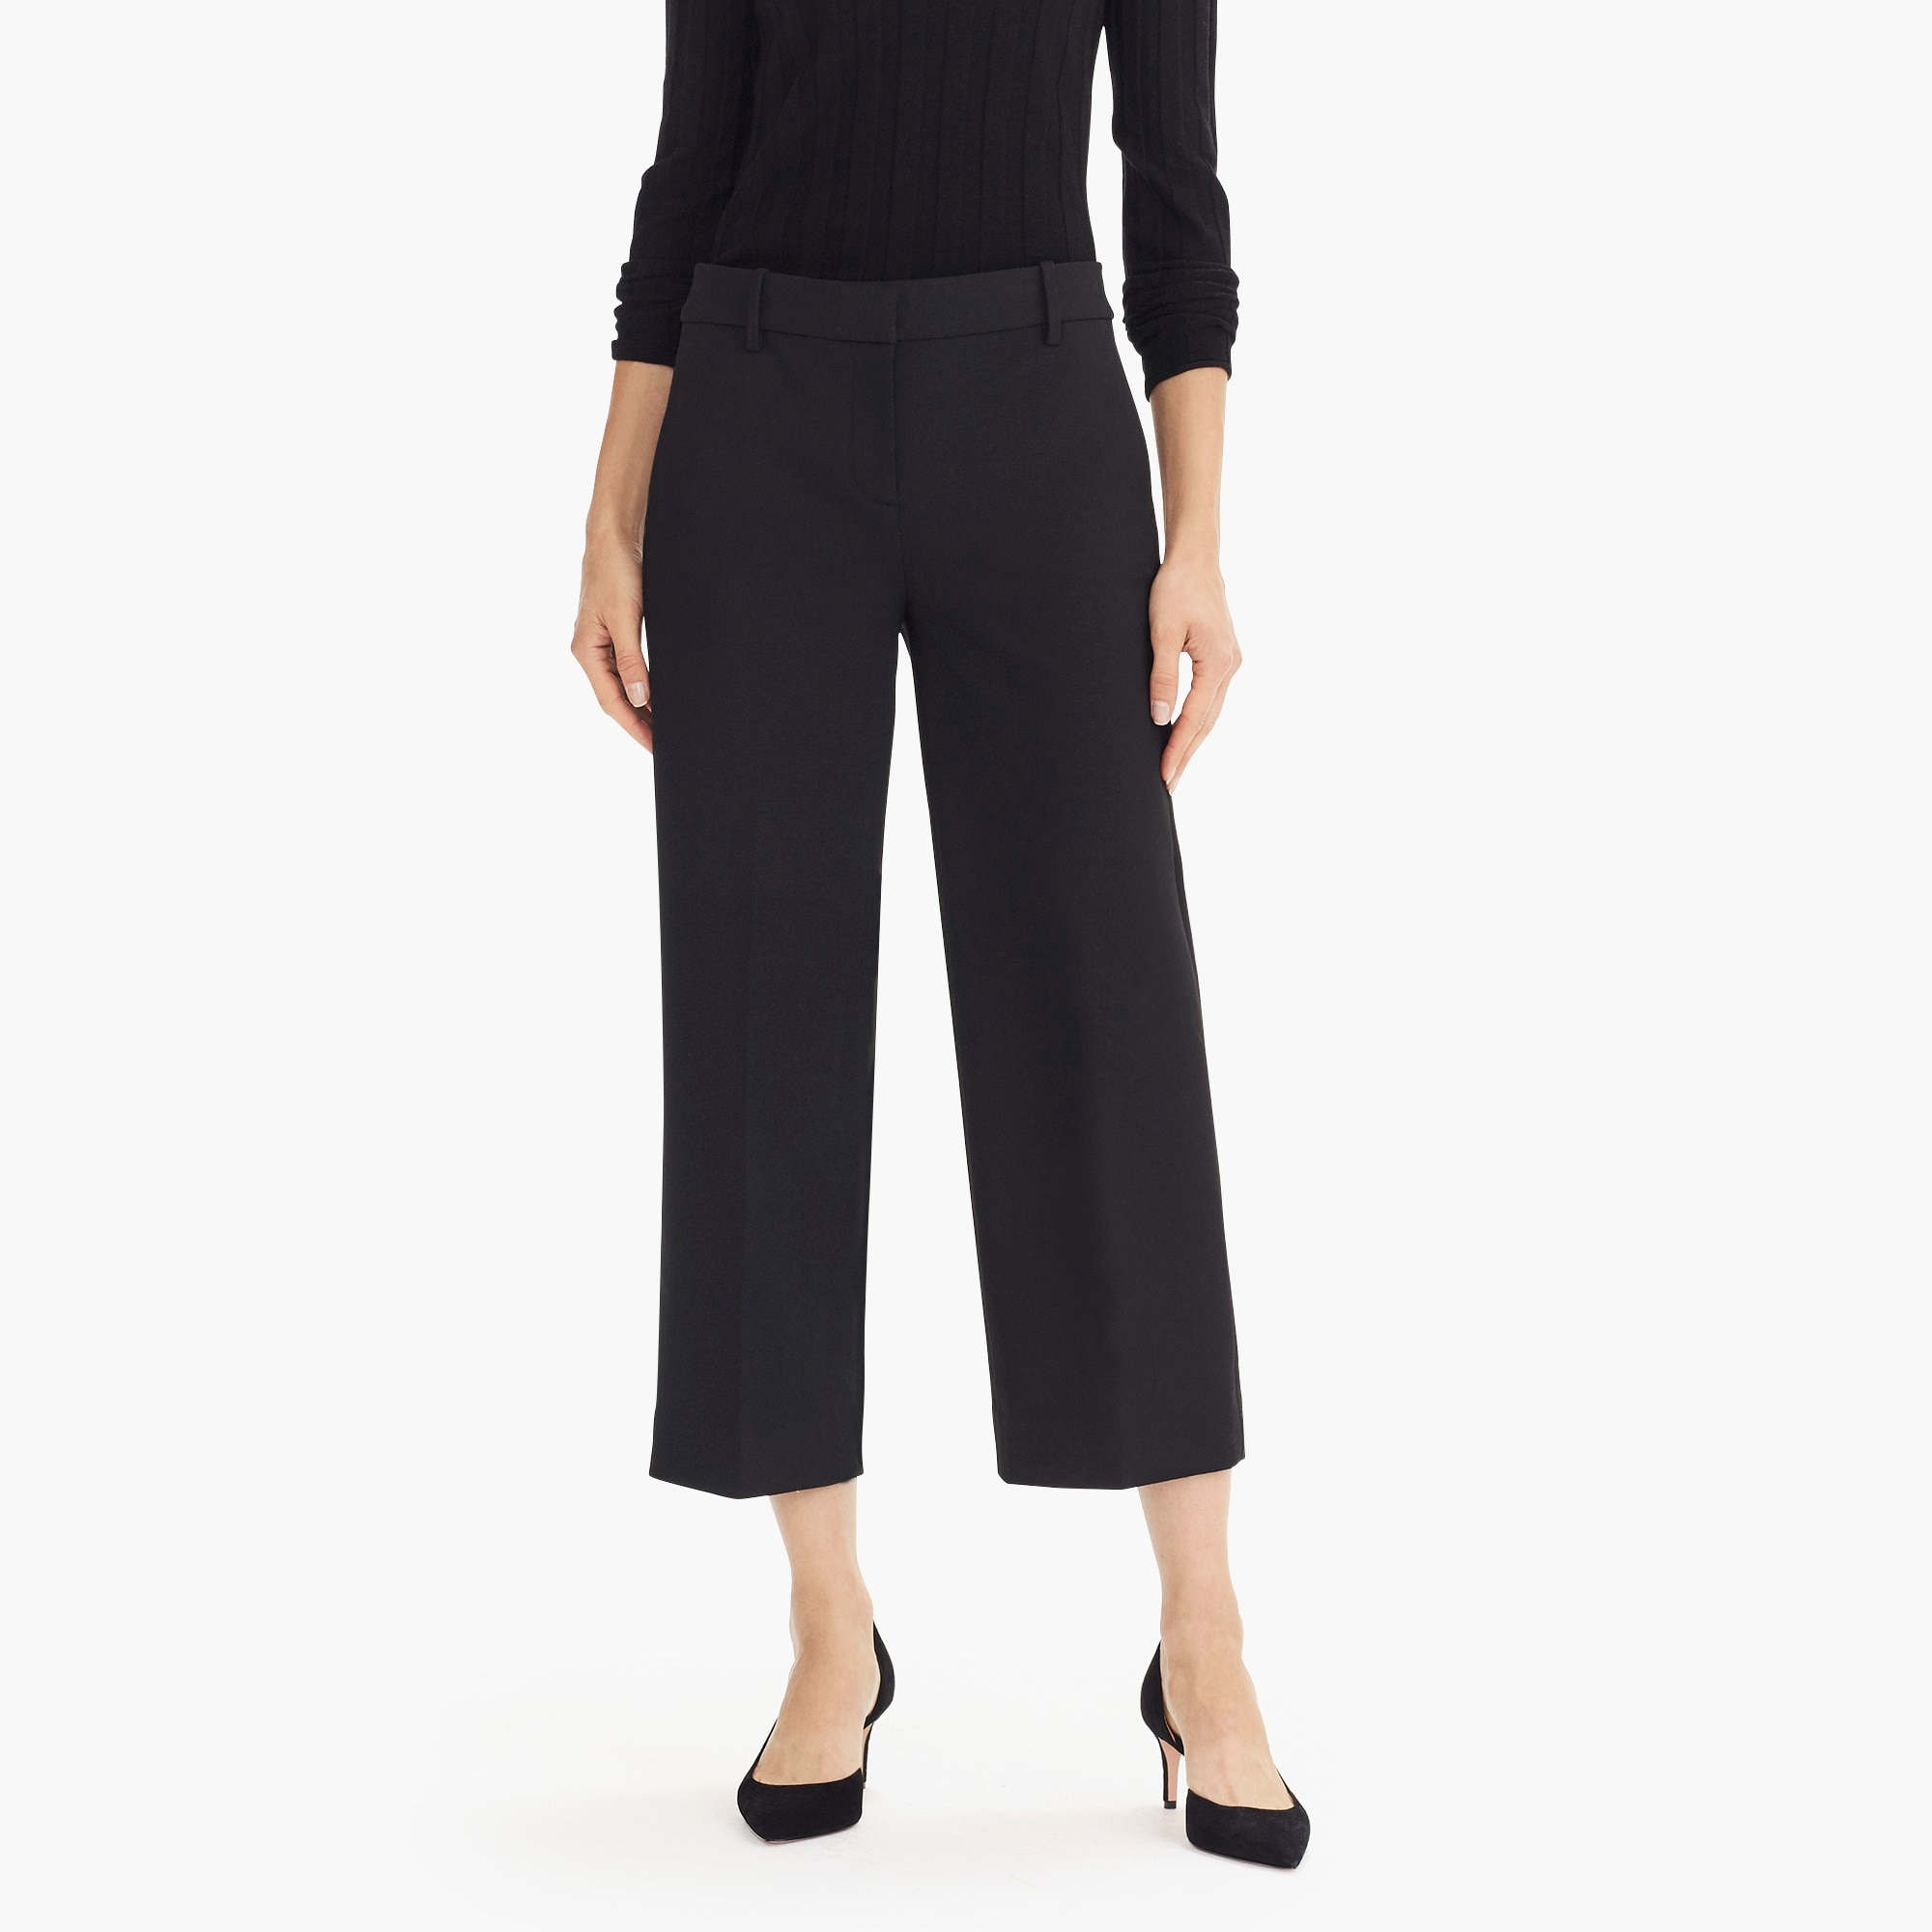 Image 4 for High-rise Peyton wide-leg pant in four-season stretch